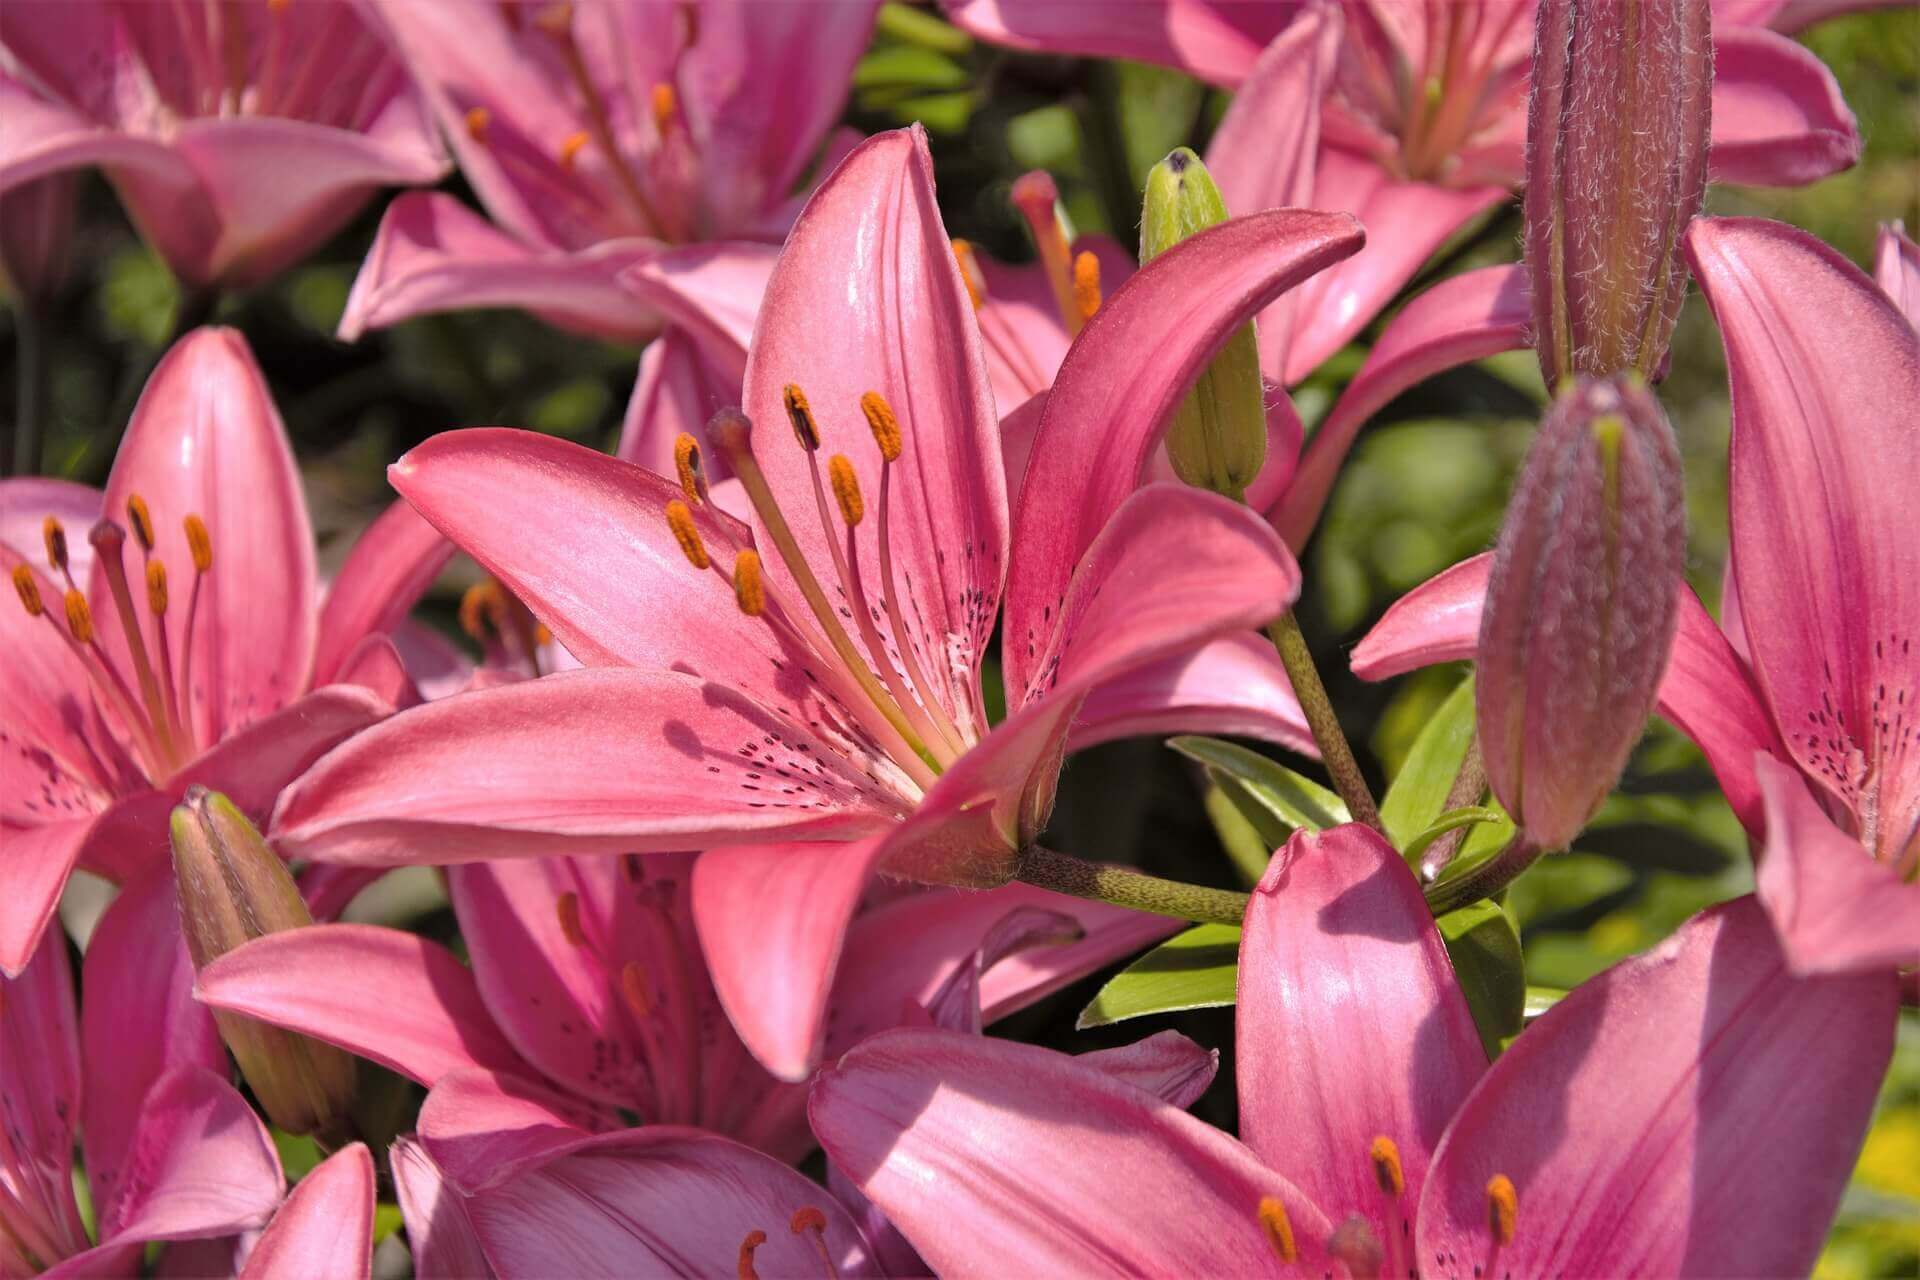 Pink lilies in lawn